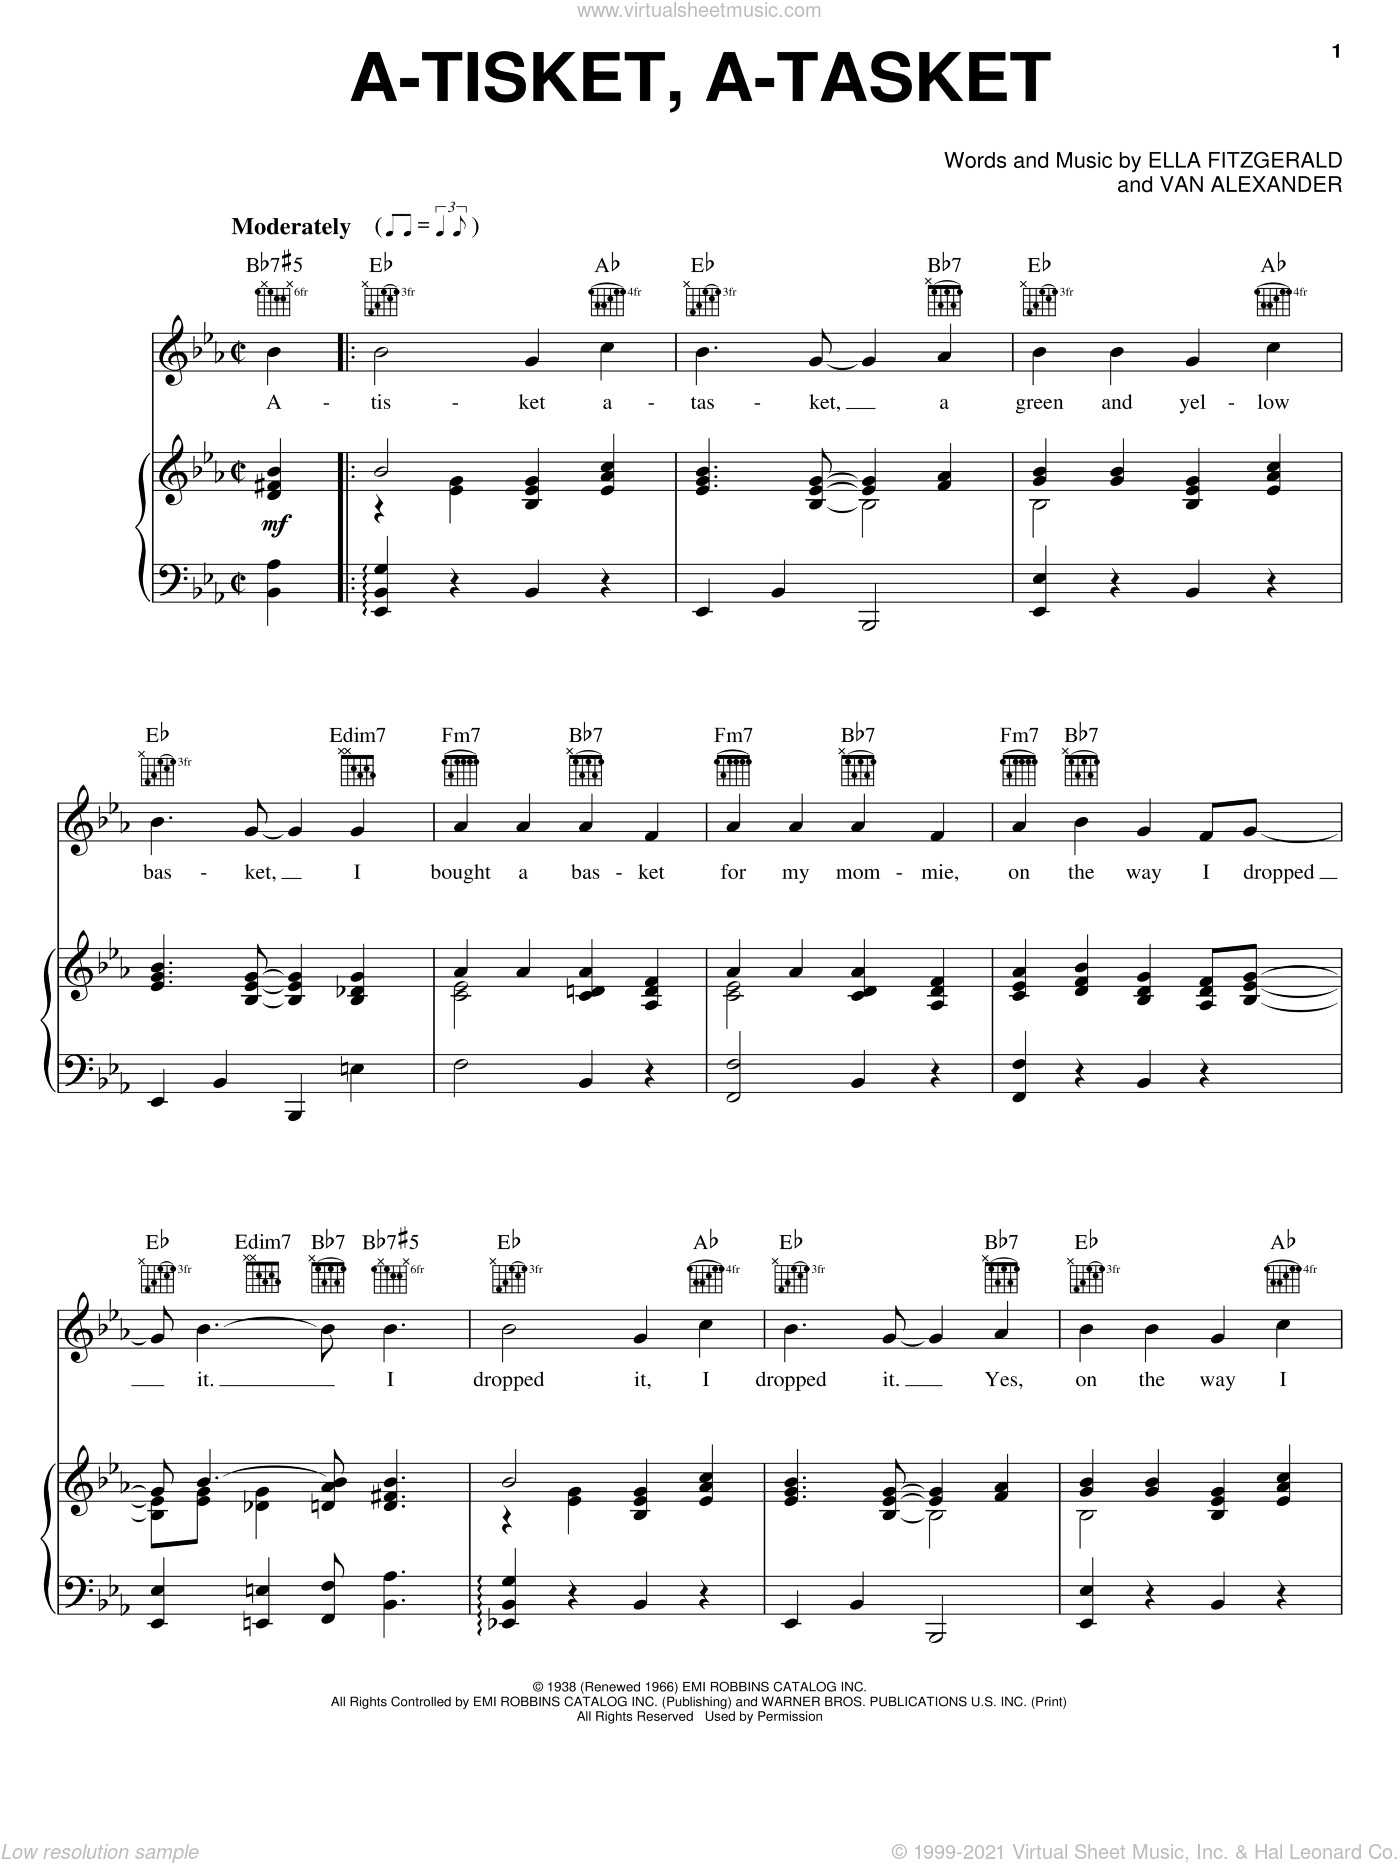 A-Tisket, A-Tasket sheet music for voice, piano or guitar by Ella Fitzgerald and Van Alexander, intermediate skill level